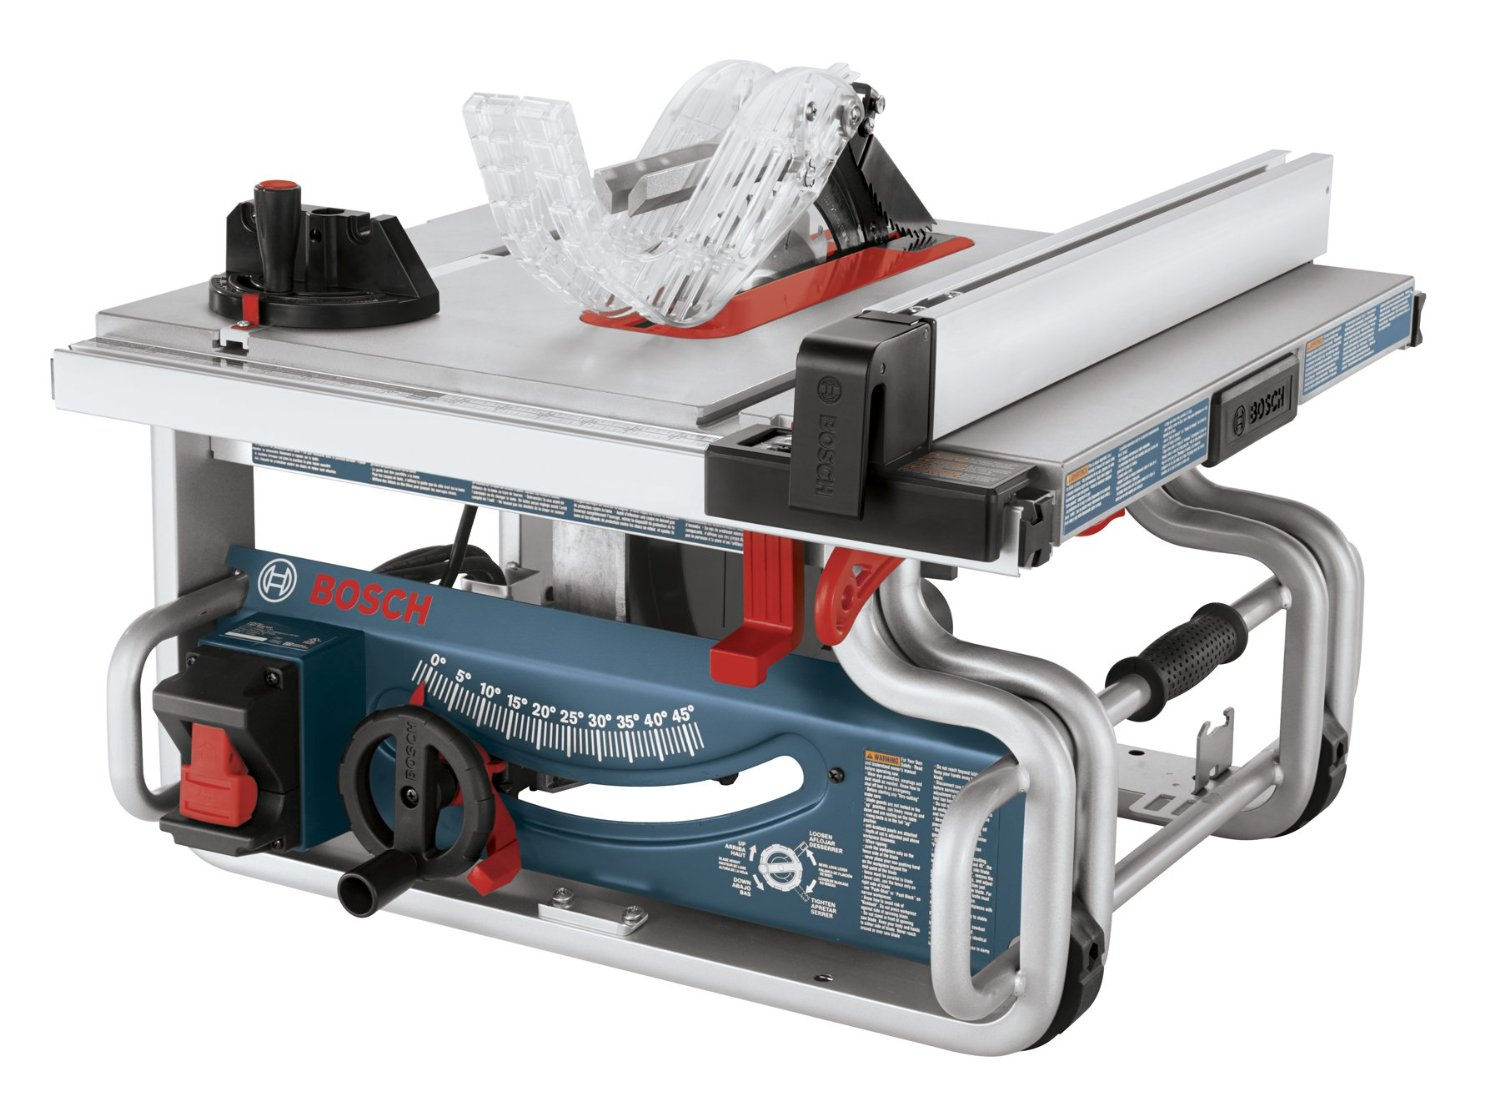 Bosch gts1031 review table saw central for Table 09 reviews